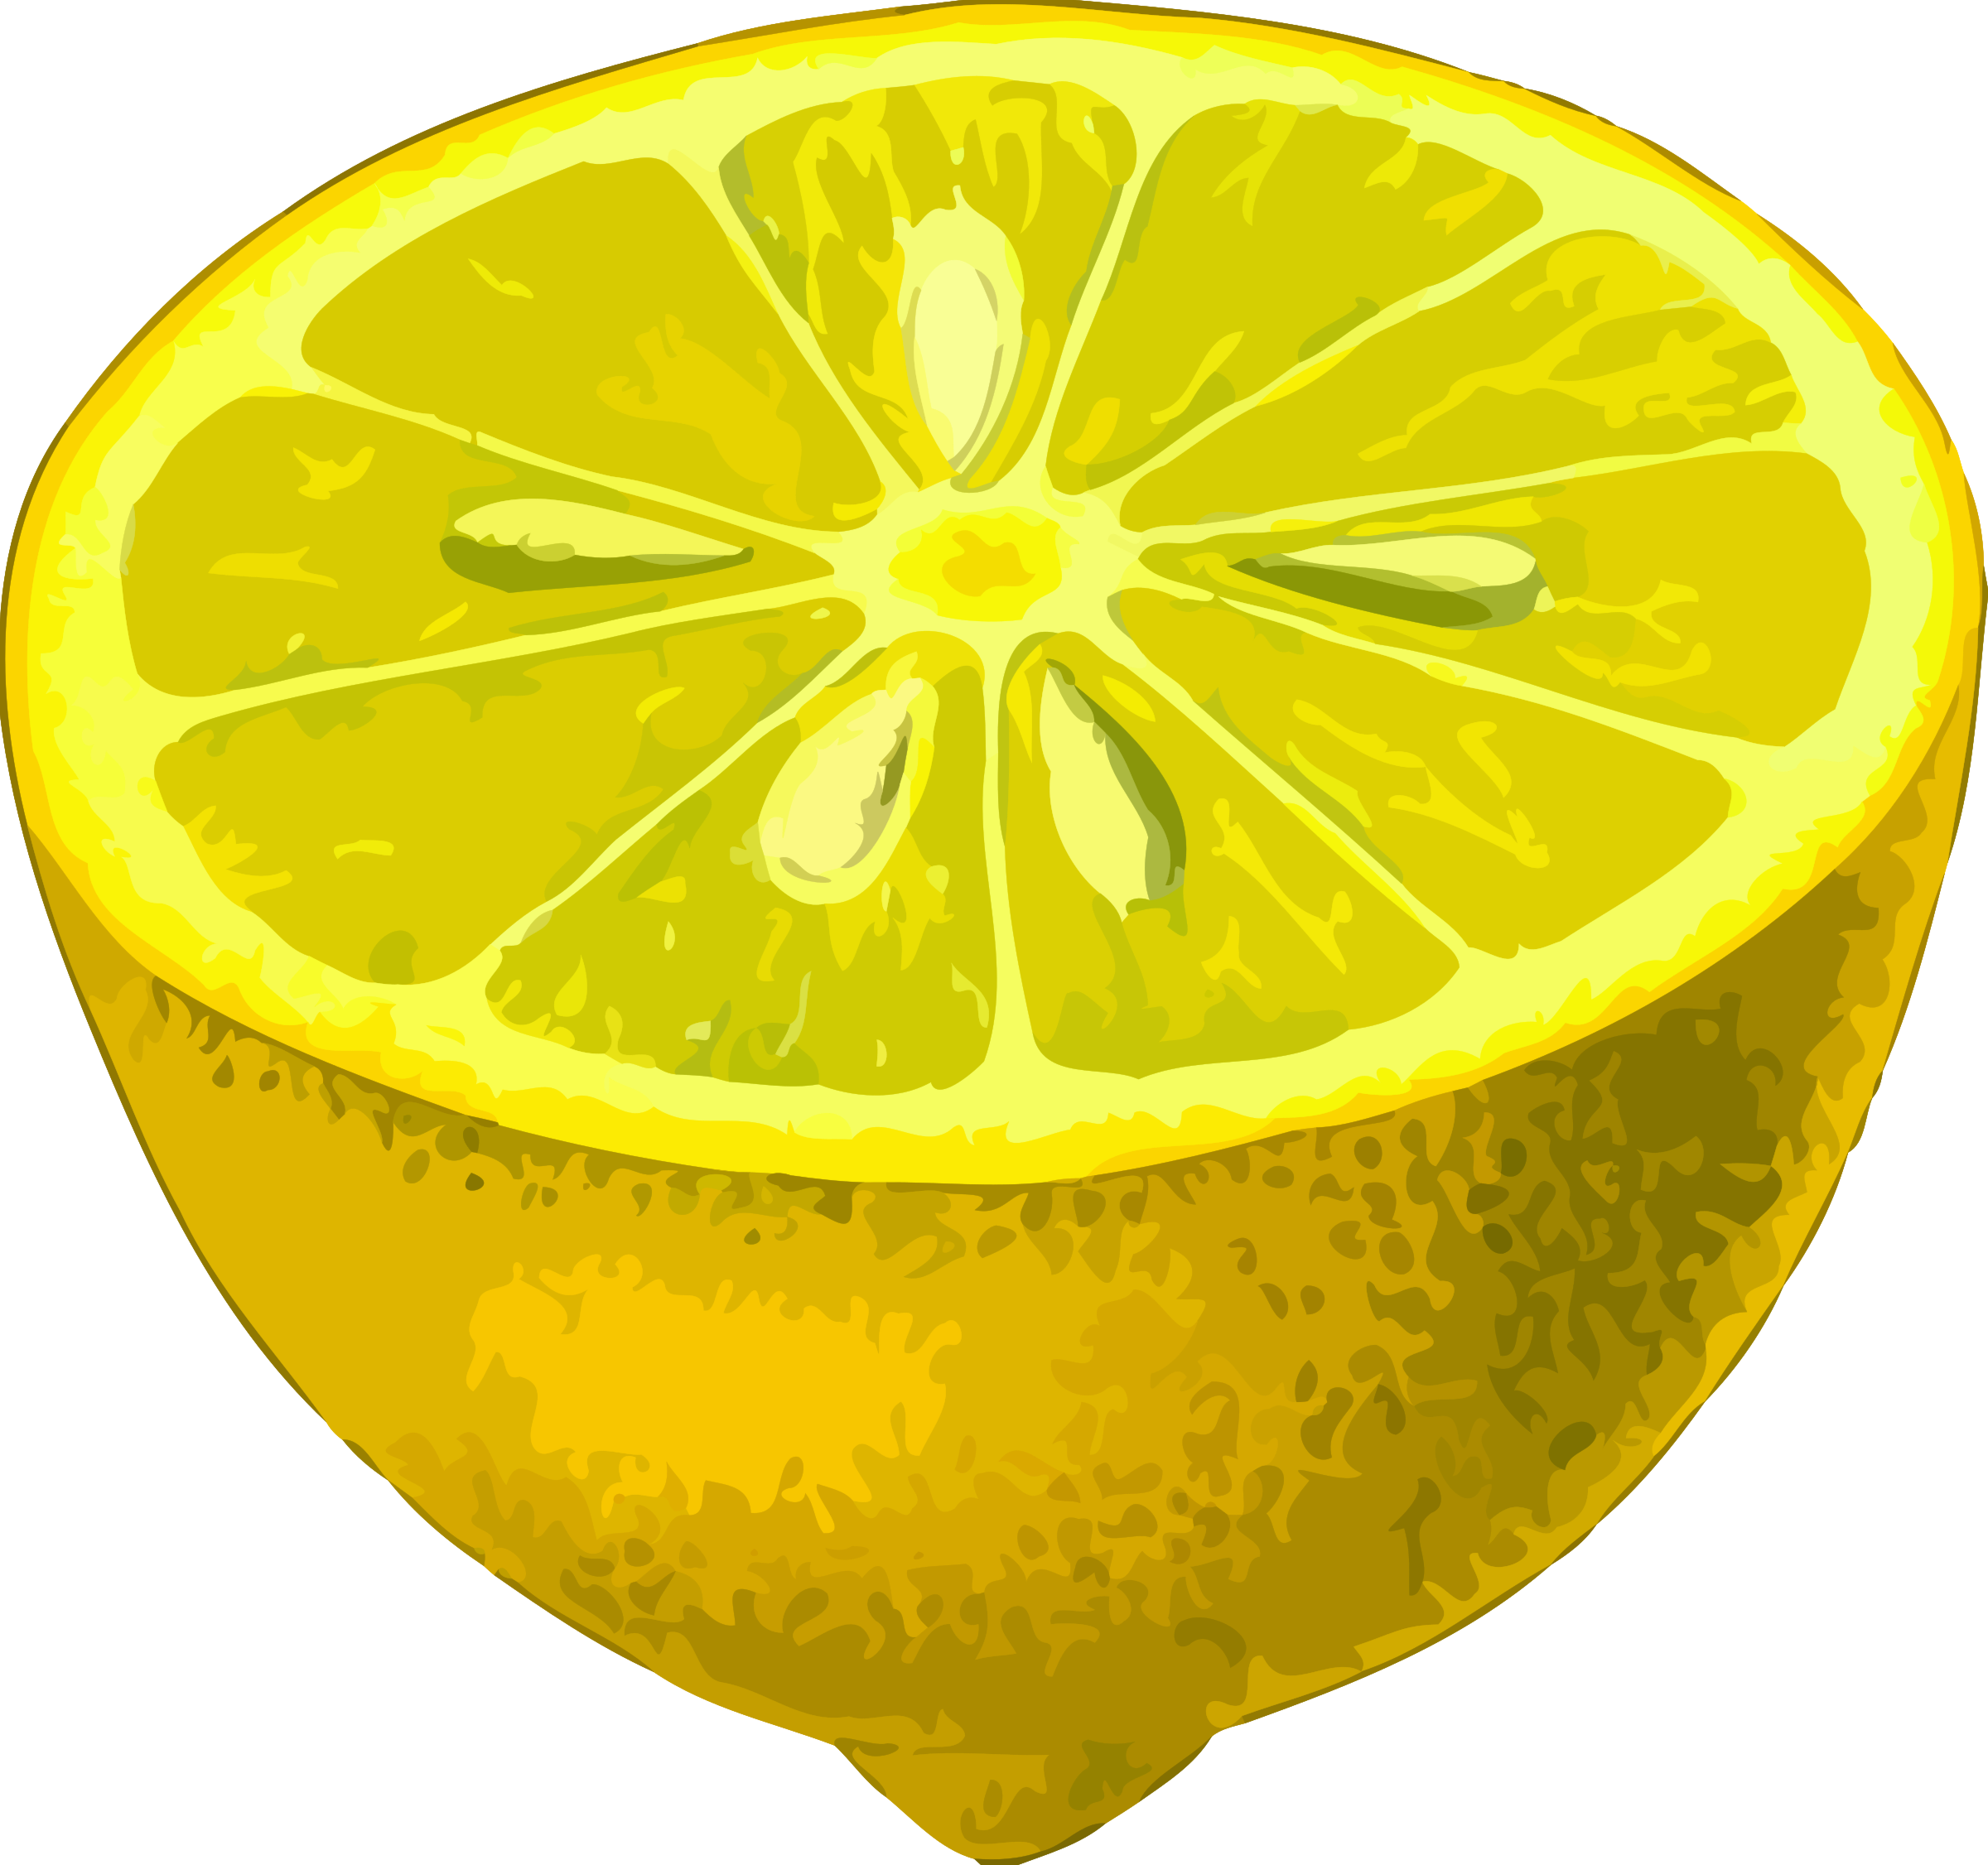 Half-lemon (low resolution) by Firkin